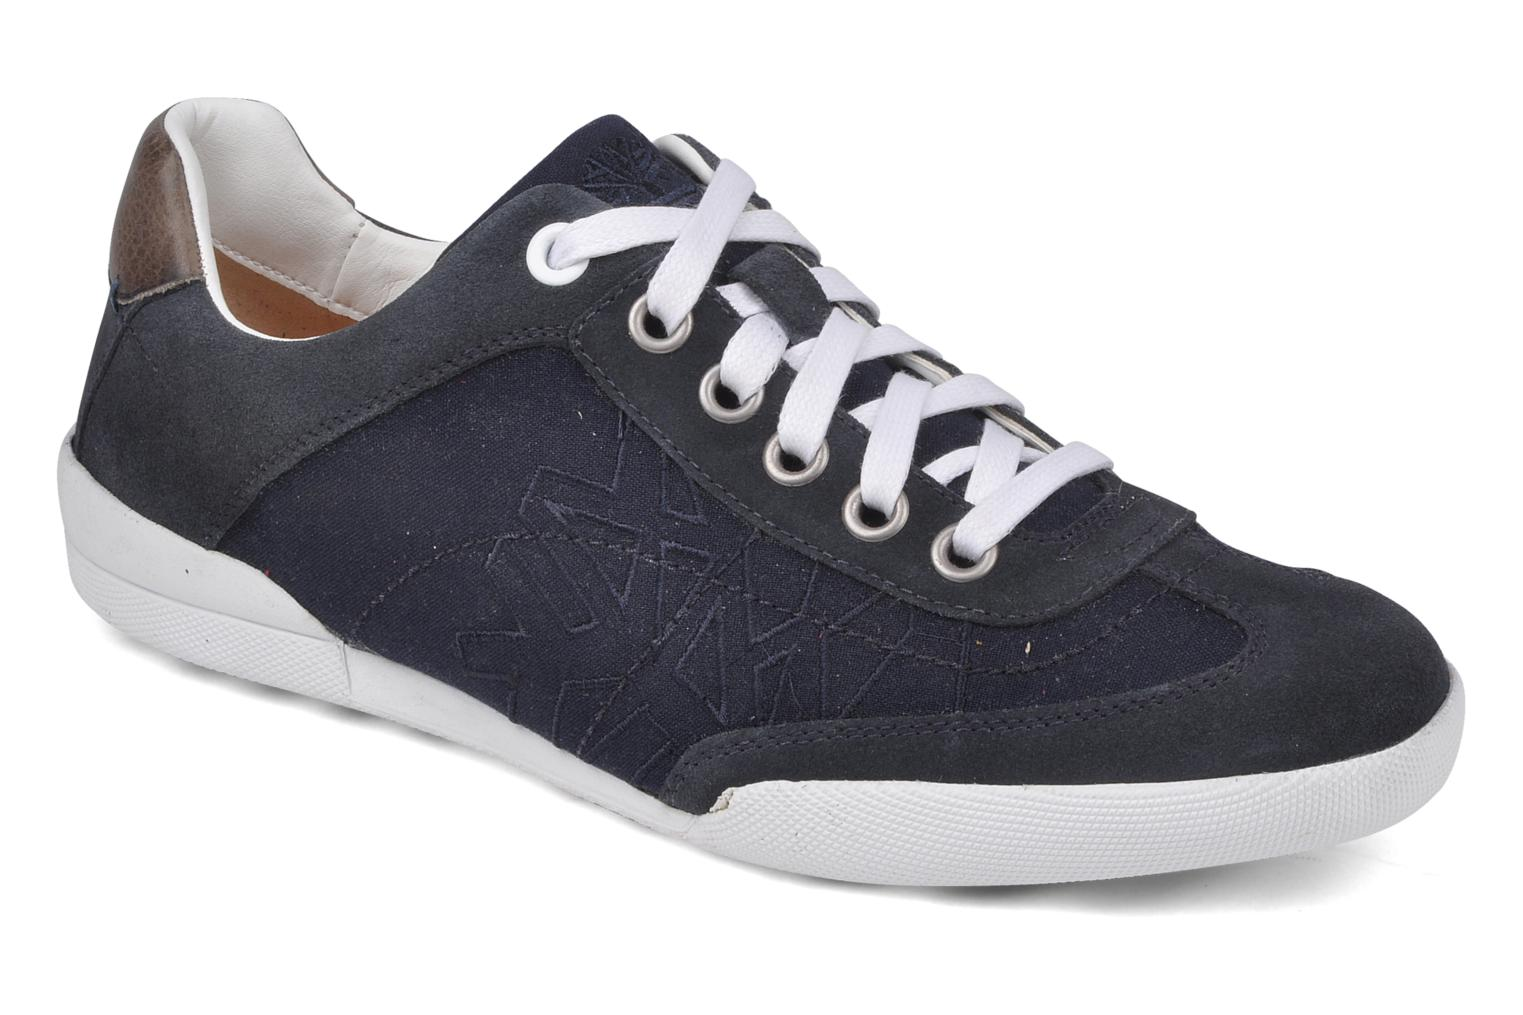 City adventure split cup sole Navy canvas suede